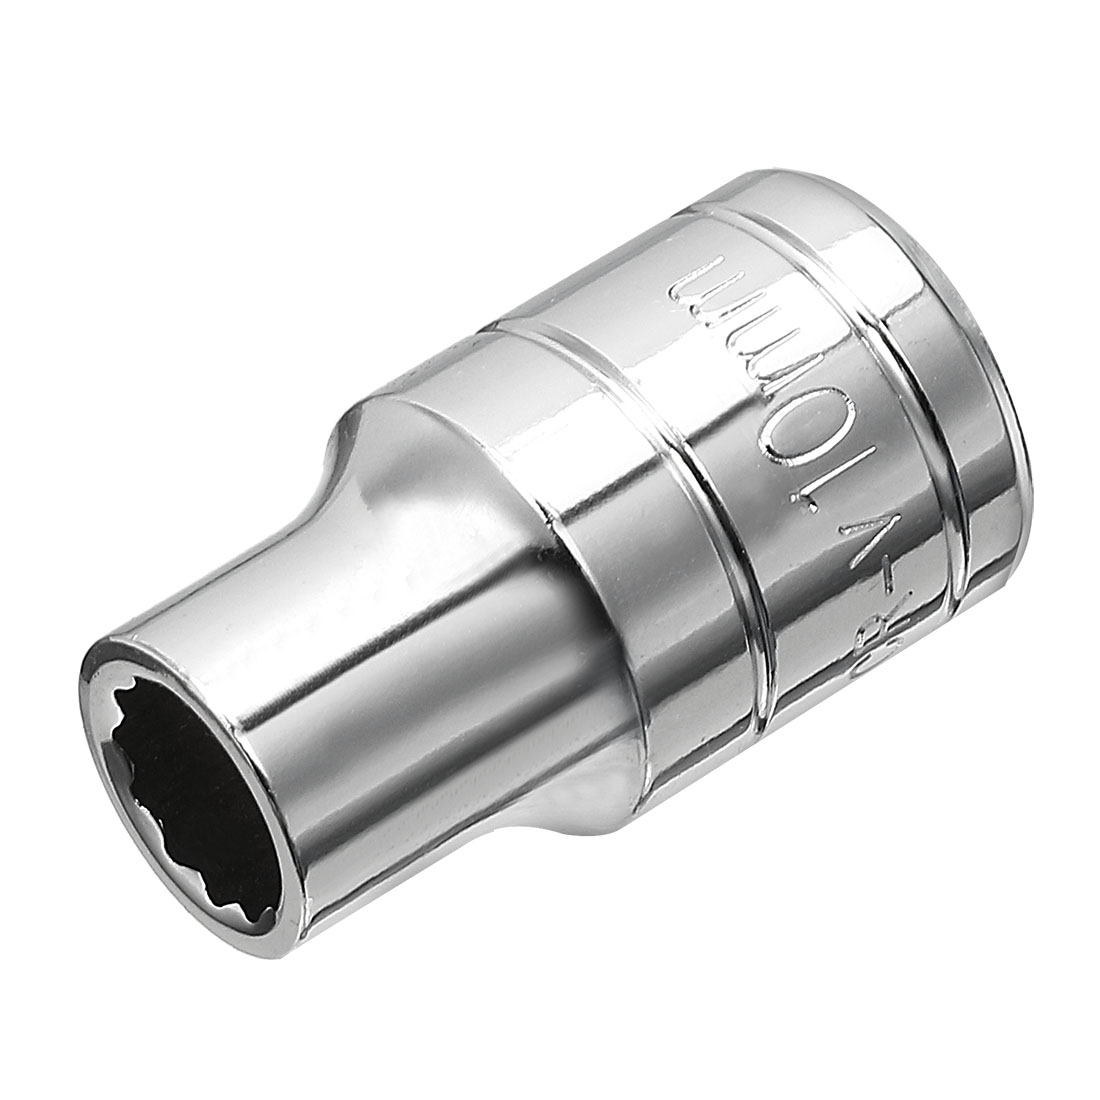 1/2-inch Drive 10mm 12-Point Shallow Socket, Cr-V Steel